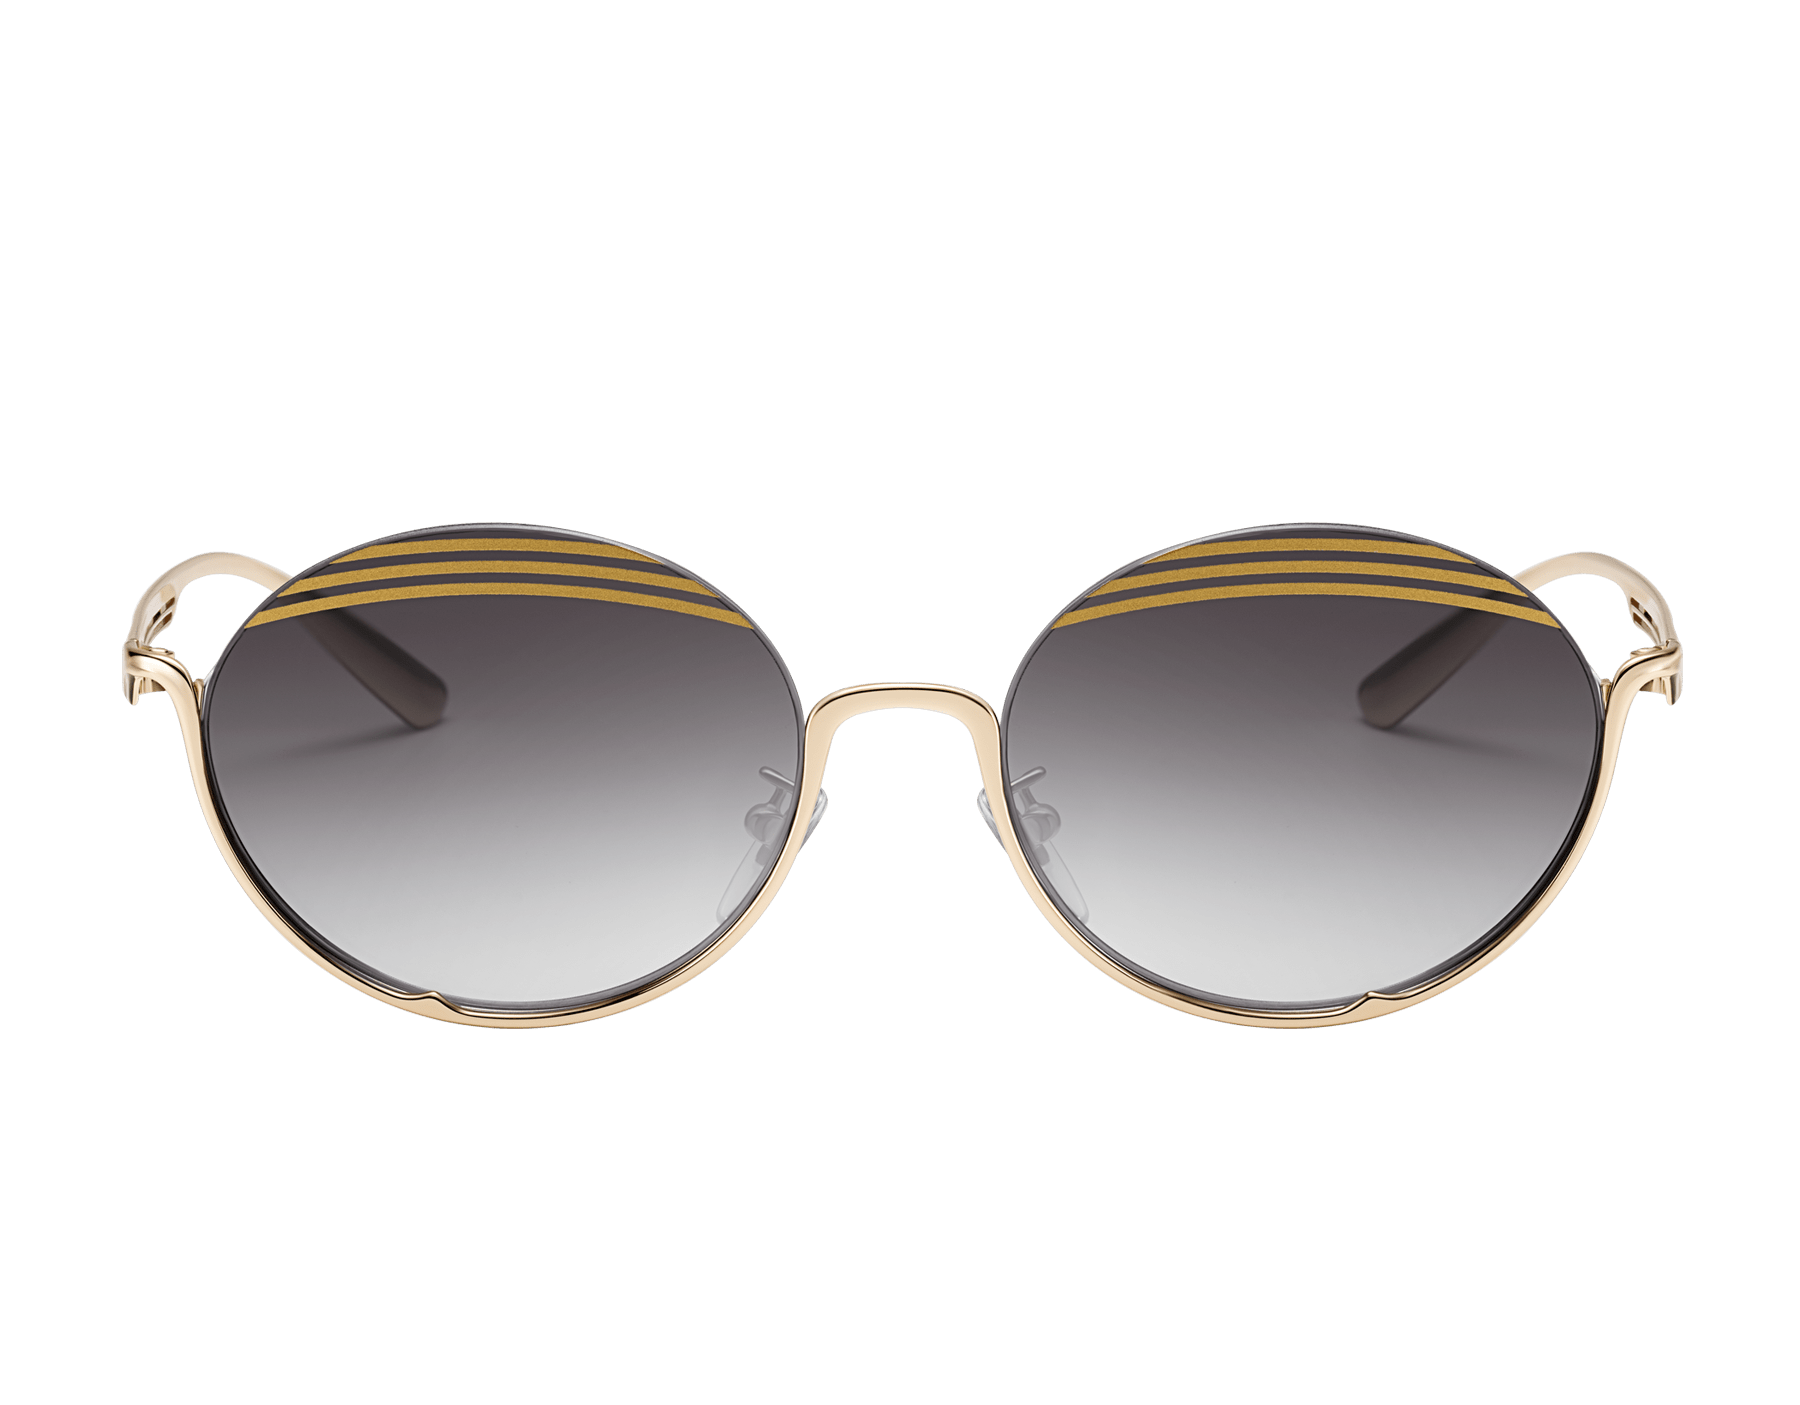 Bvlgari B.zero1 B.stripe semi-rimless oval metal sunglasses. 903719 image 2